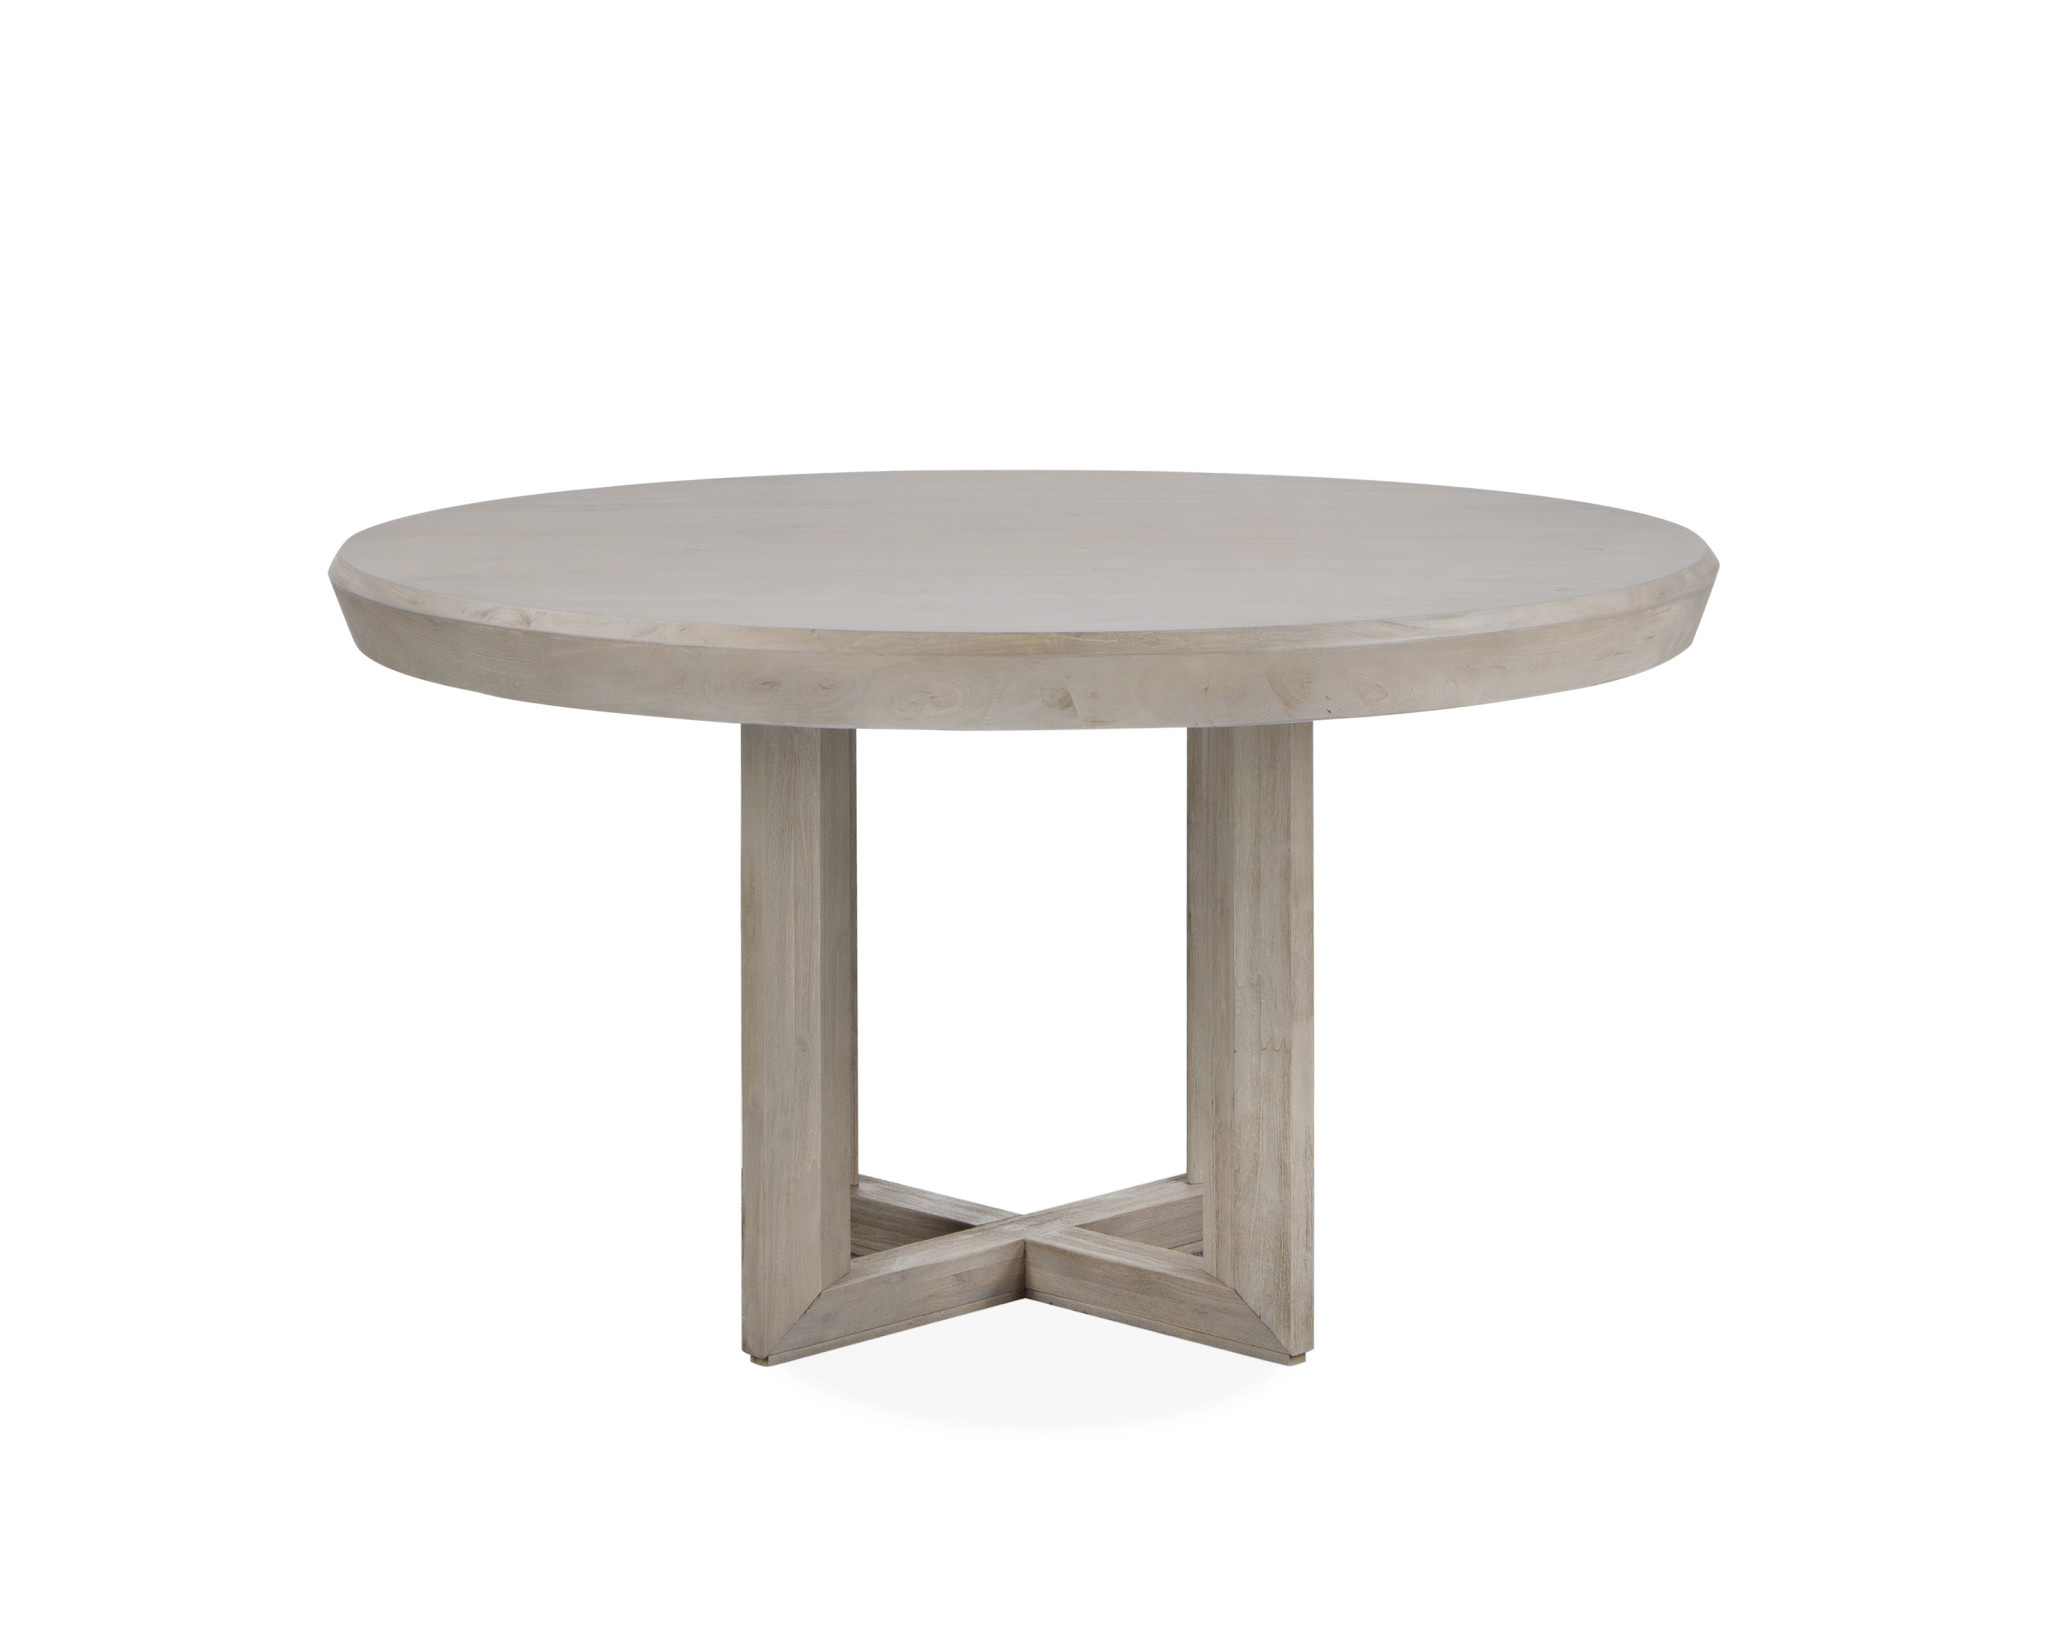 REPLAY ROUND DINING TABLE